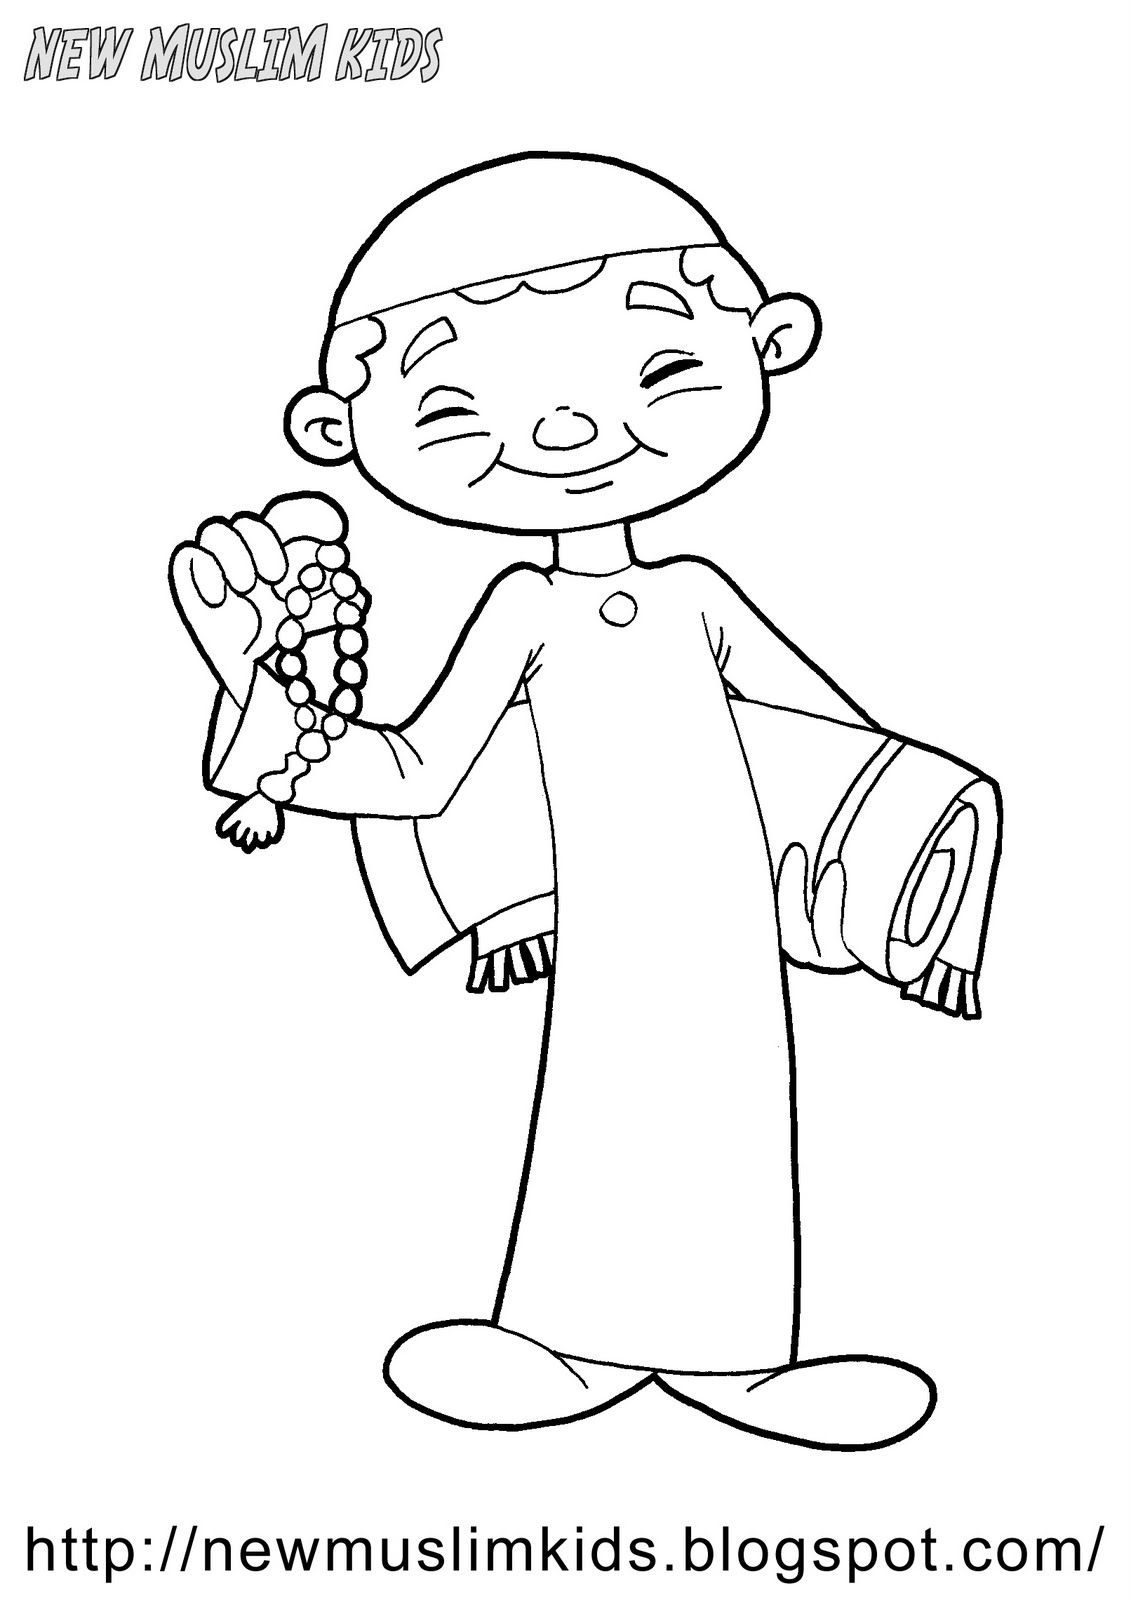 New Muslim Kids: Coloring Pages for Free 7: